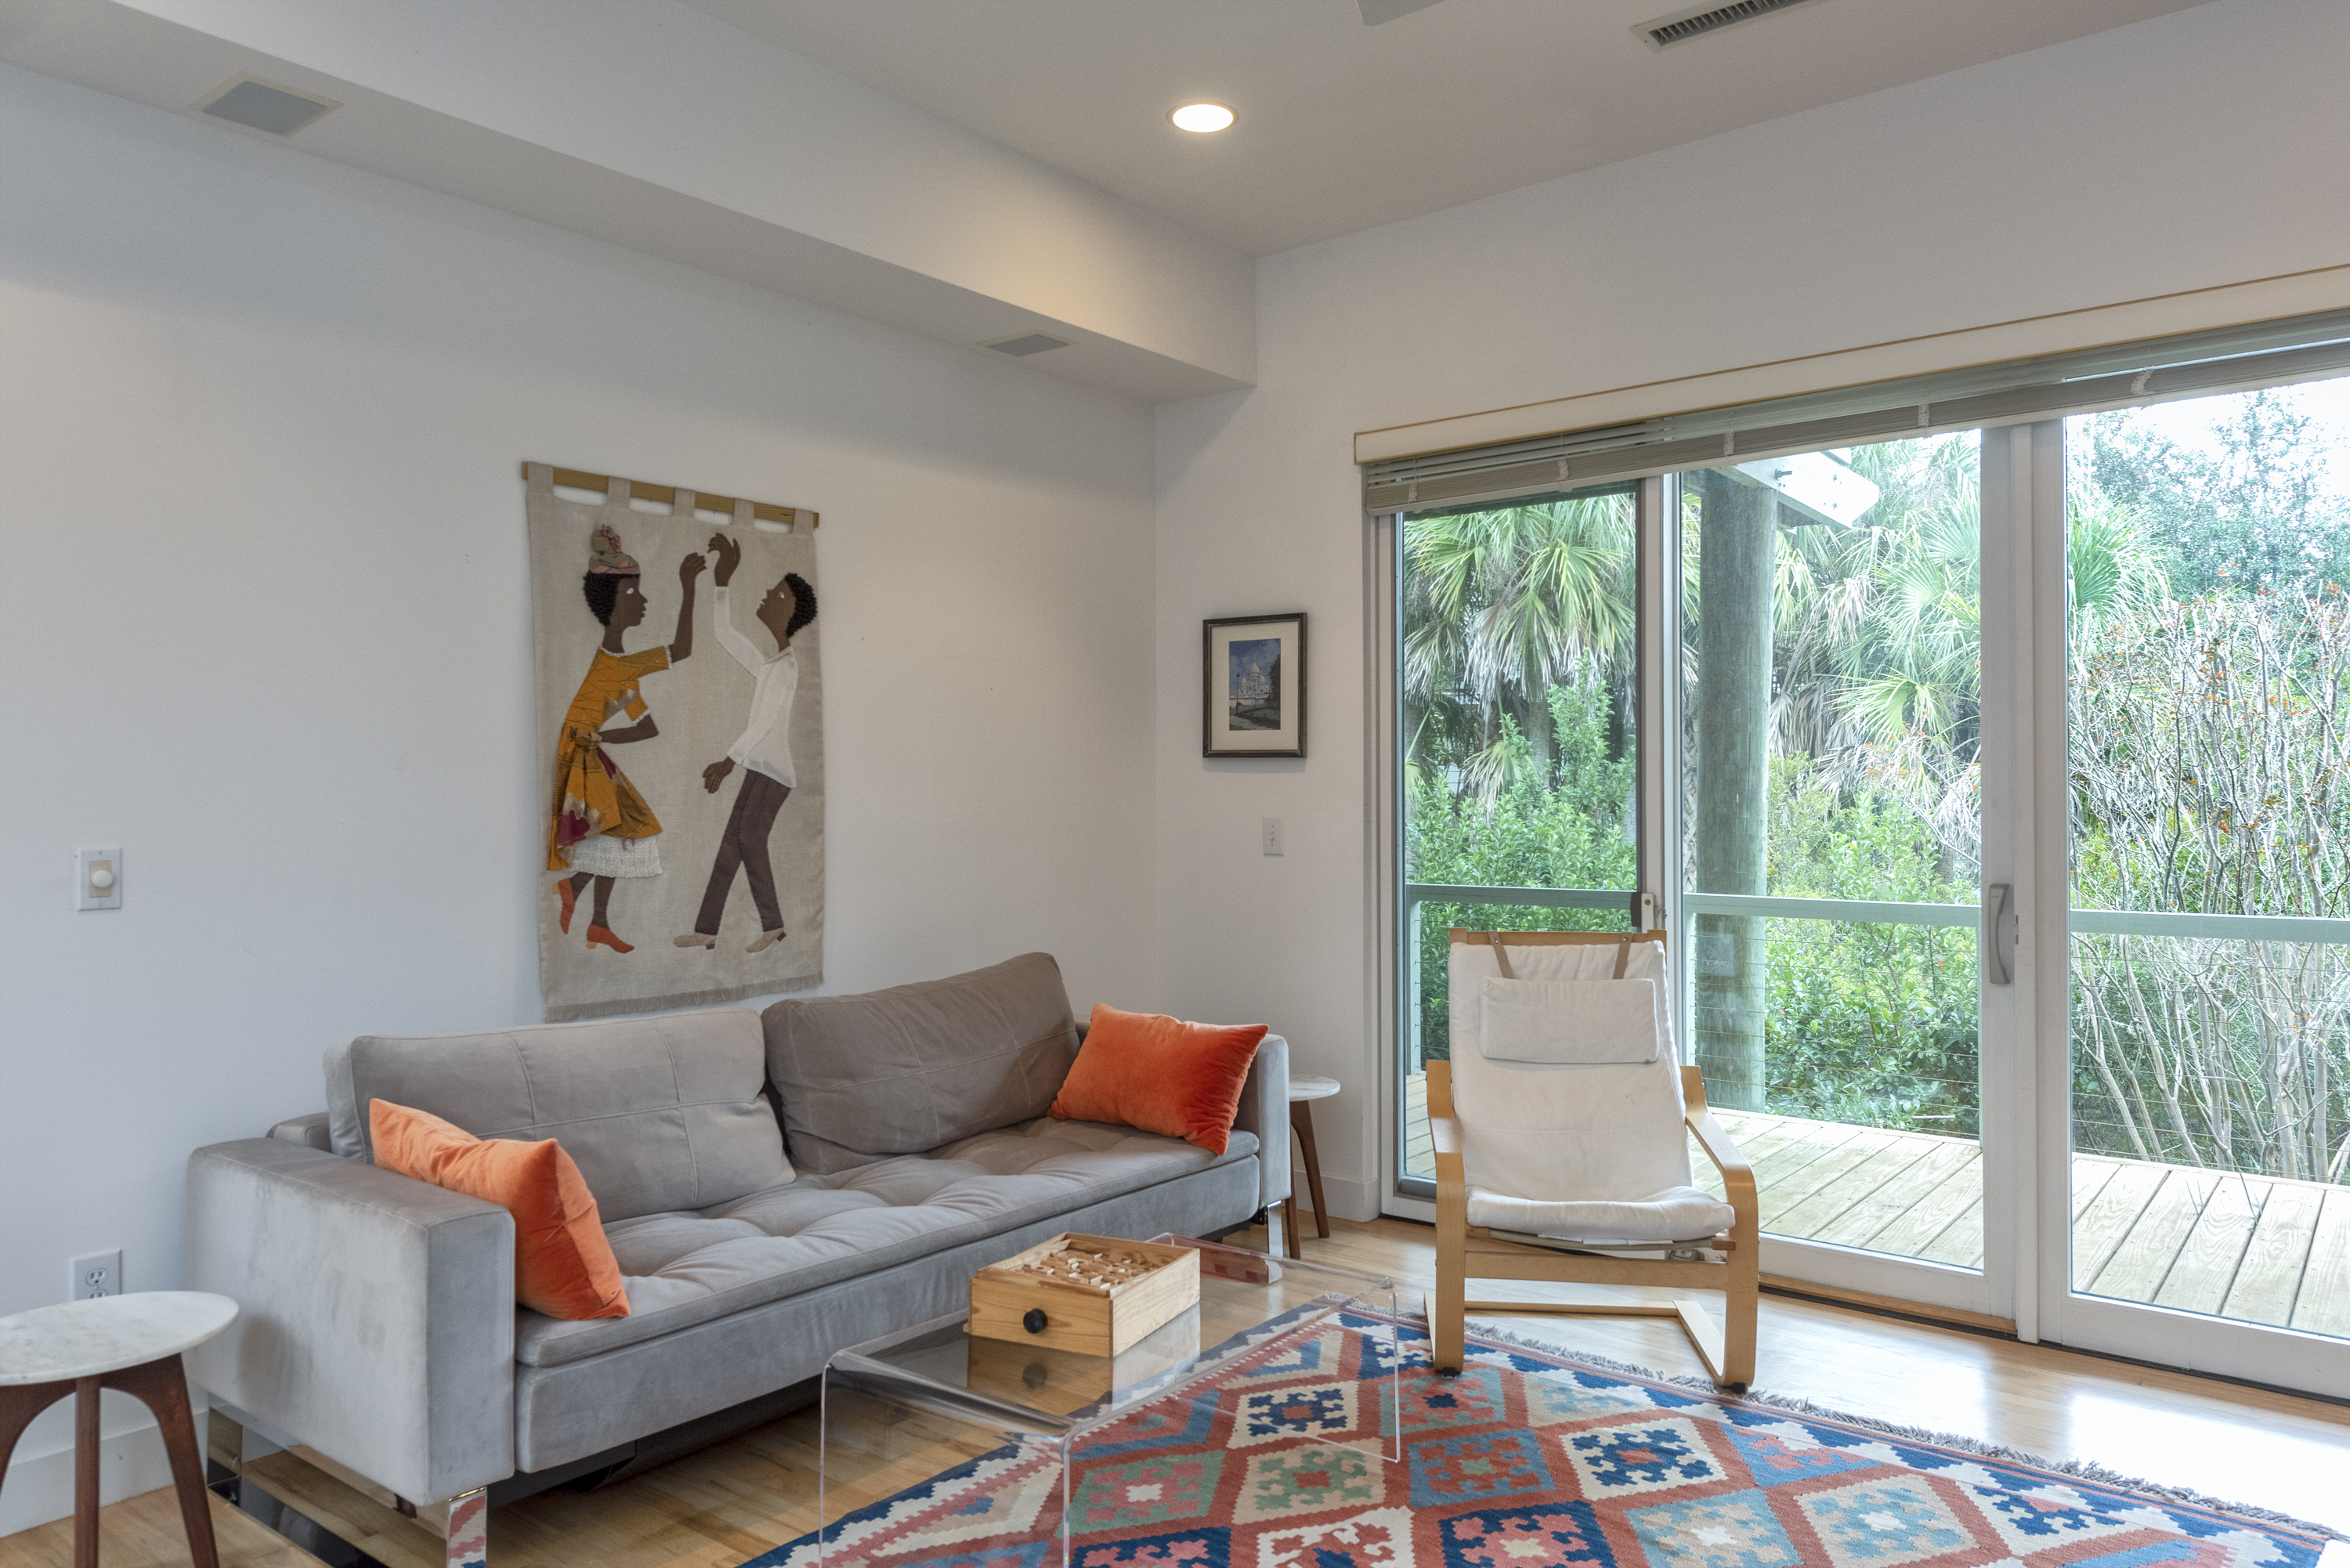 Sliding doors leading to open deck. A comfortable pull-out full sofa bed is featured.